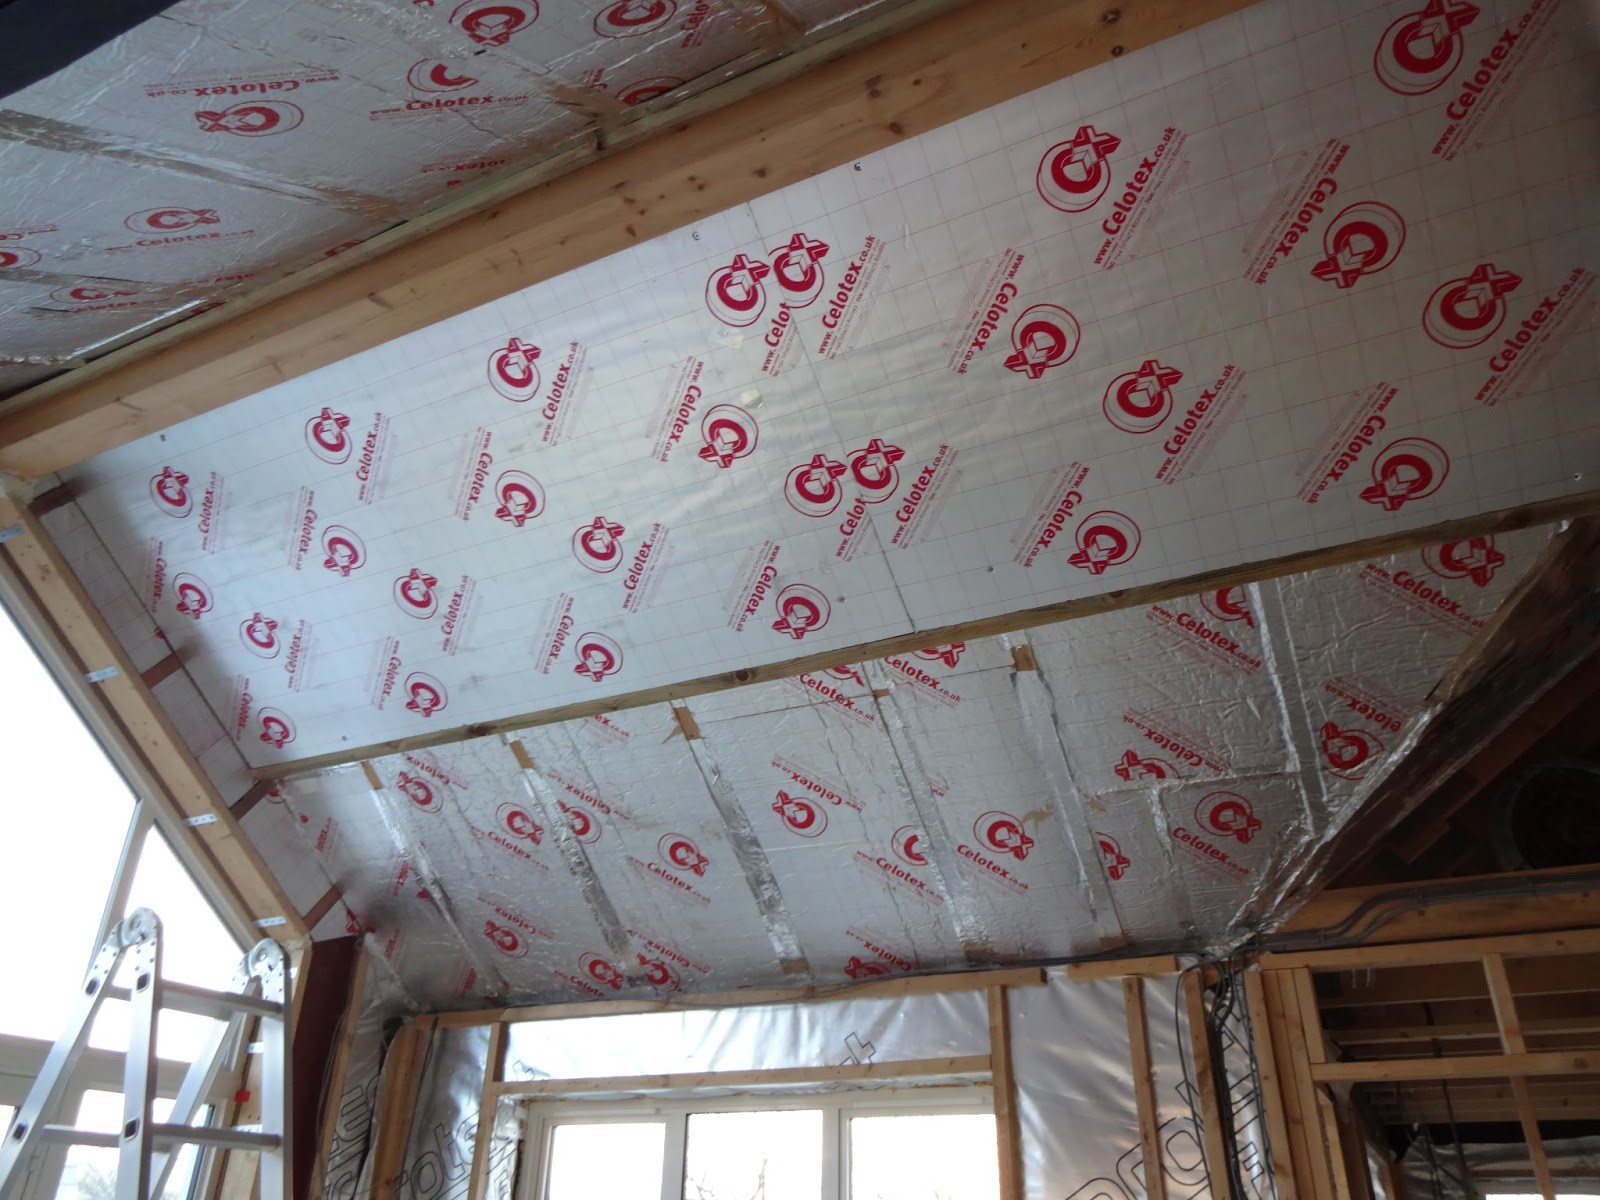 Alan Planned The Insulation Requirements Of Vaulted Ceiling So That It Would Match In